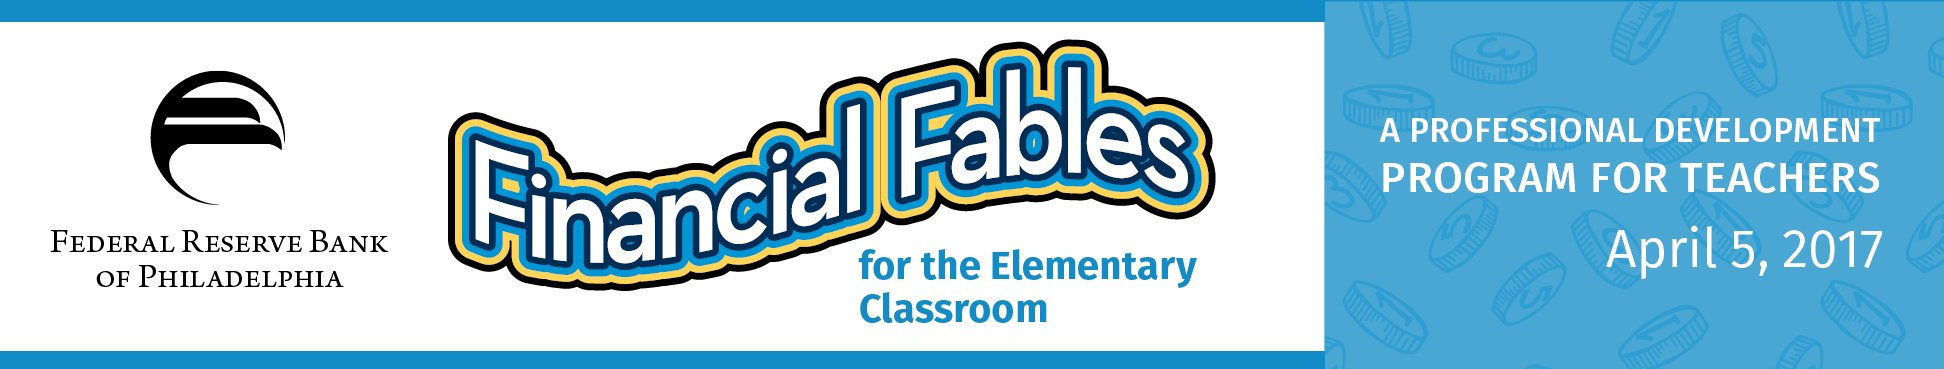 Financial Fables for the Elementary Classroom